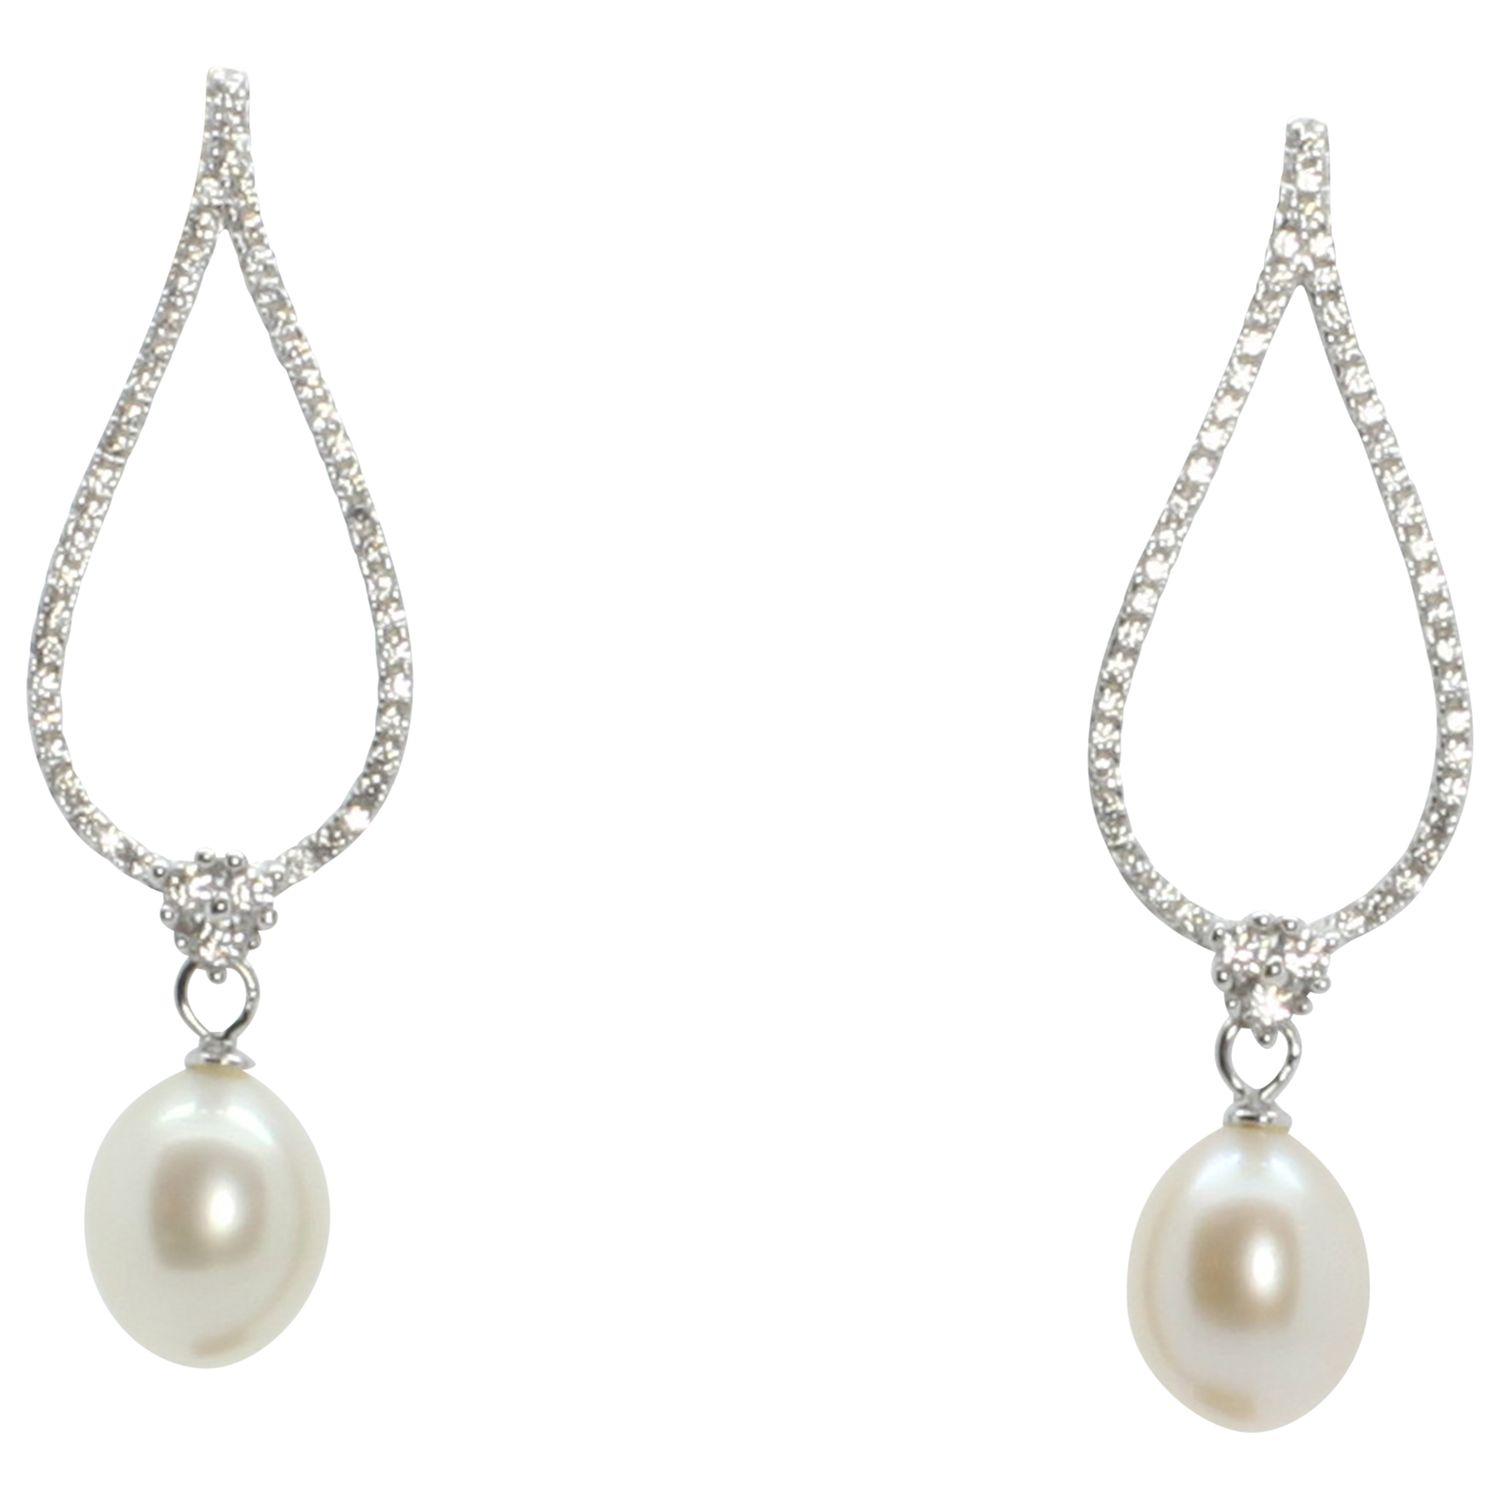 Lido Pearls Lido Pearls Large Open Oval Cubic Zirconia and Freshwater Pearl Drop Earrings, Silver/White